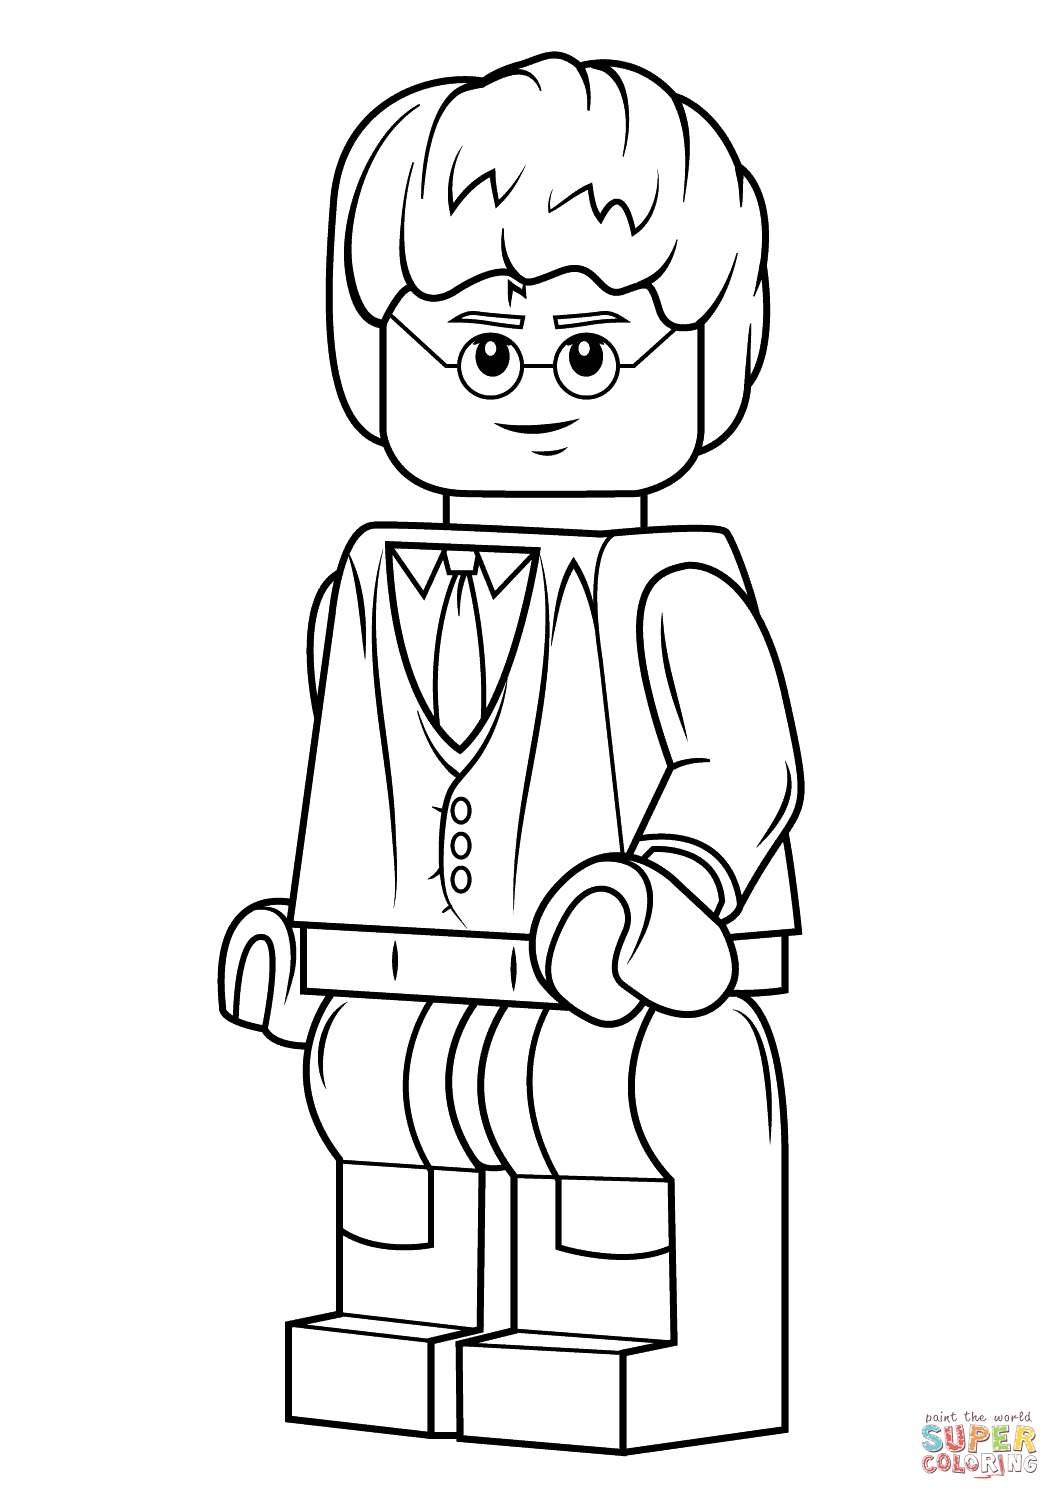 Top 20 Free Printable Harry Potter Coloring Pages Online | 1500x1060